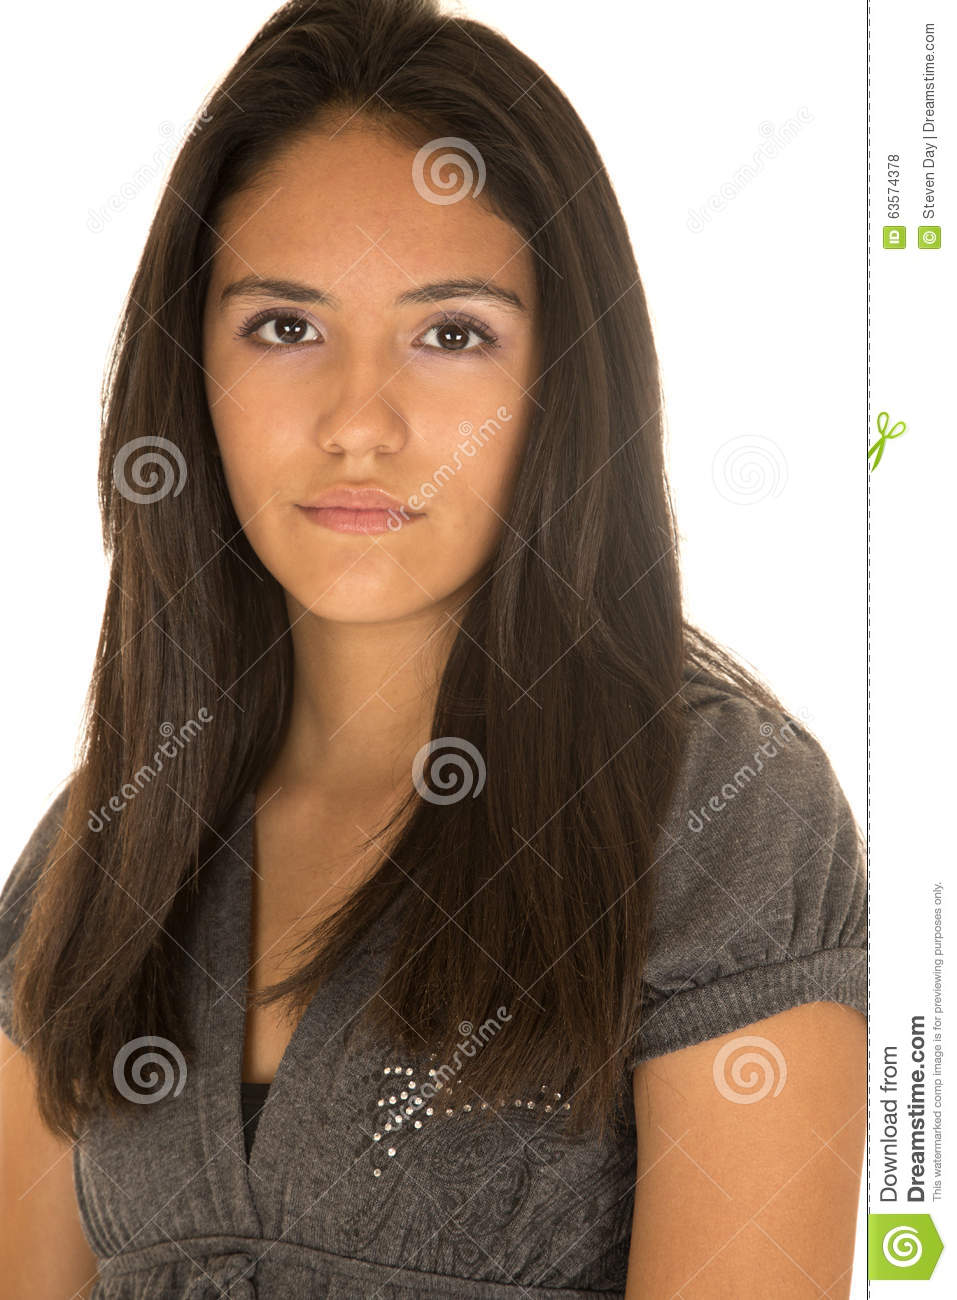 Portrait of cute teen Hispanic girl serious expression